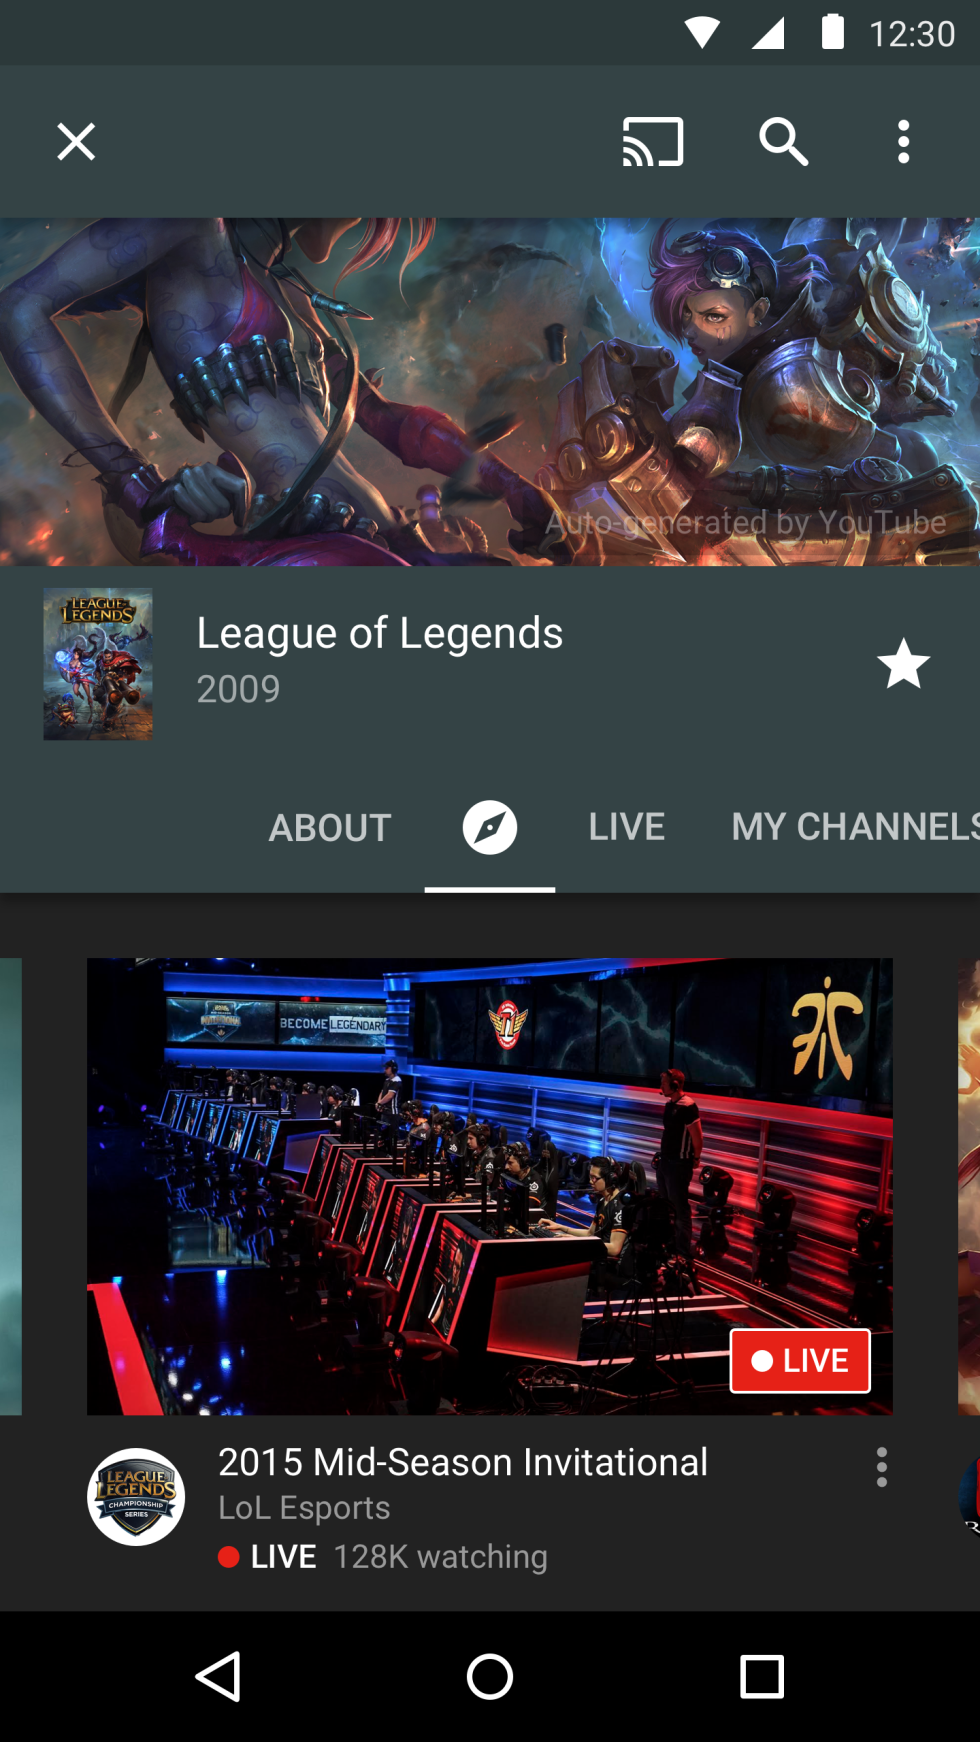 Youtube Gaming L Application Enfin Disponible En France: Look Out, Twitch! YouTube Gaming Is Coming This Summer